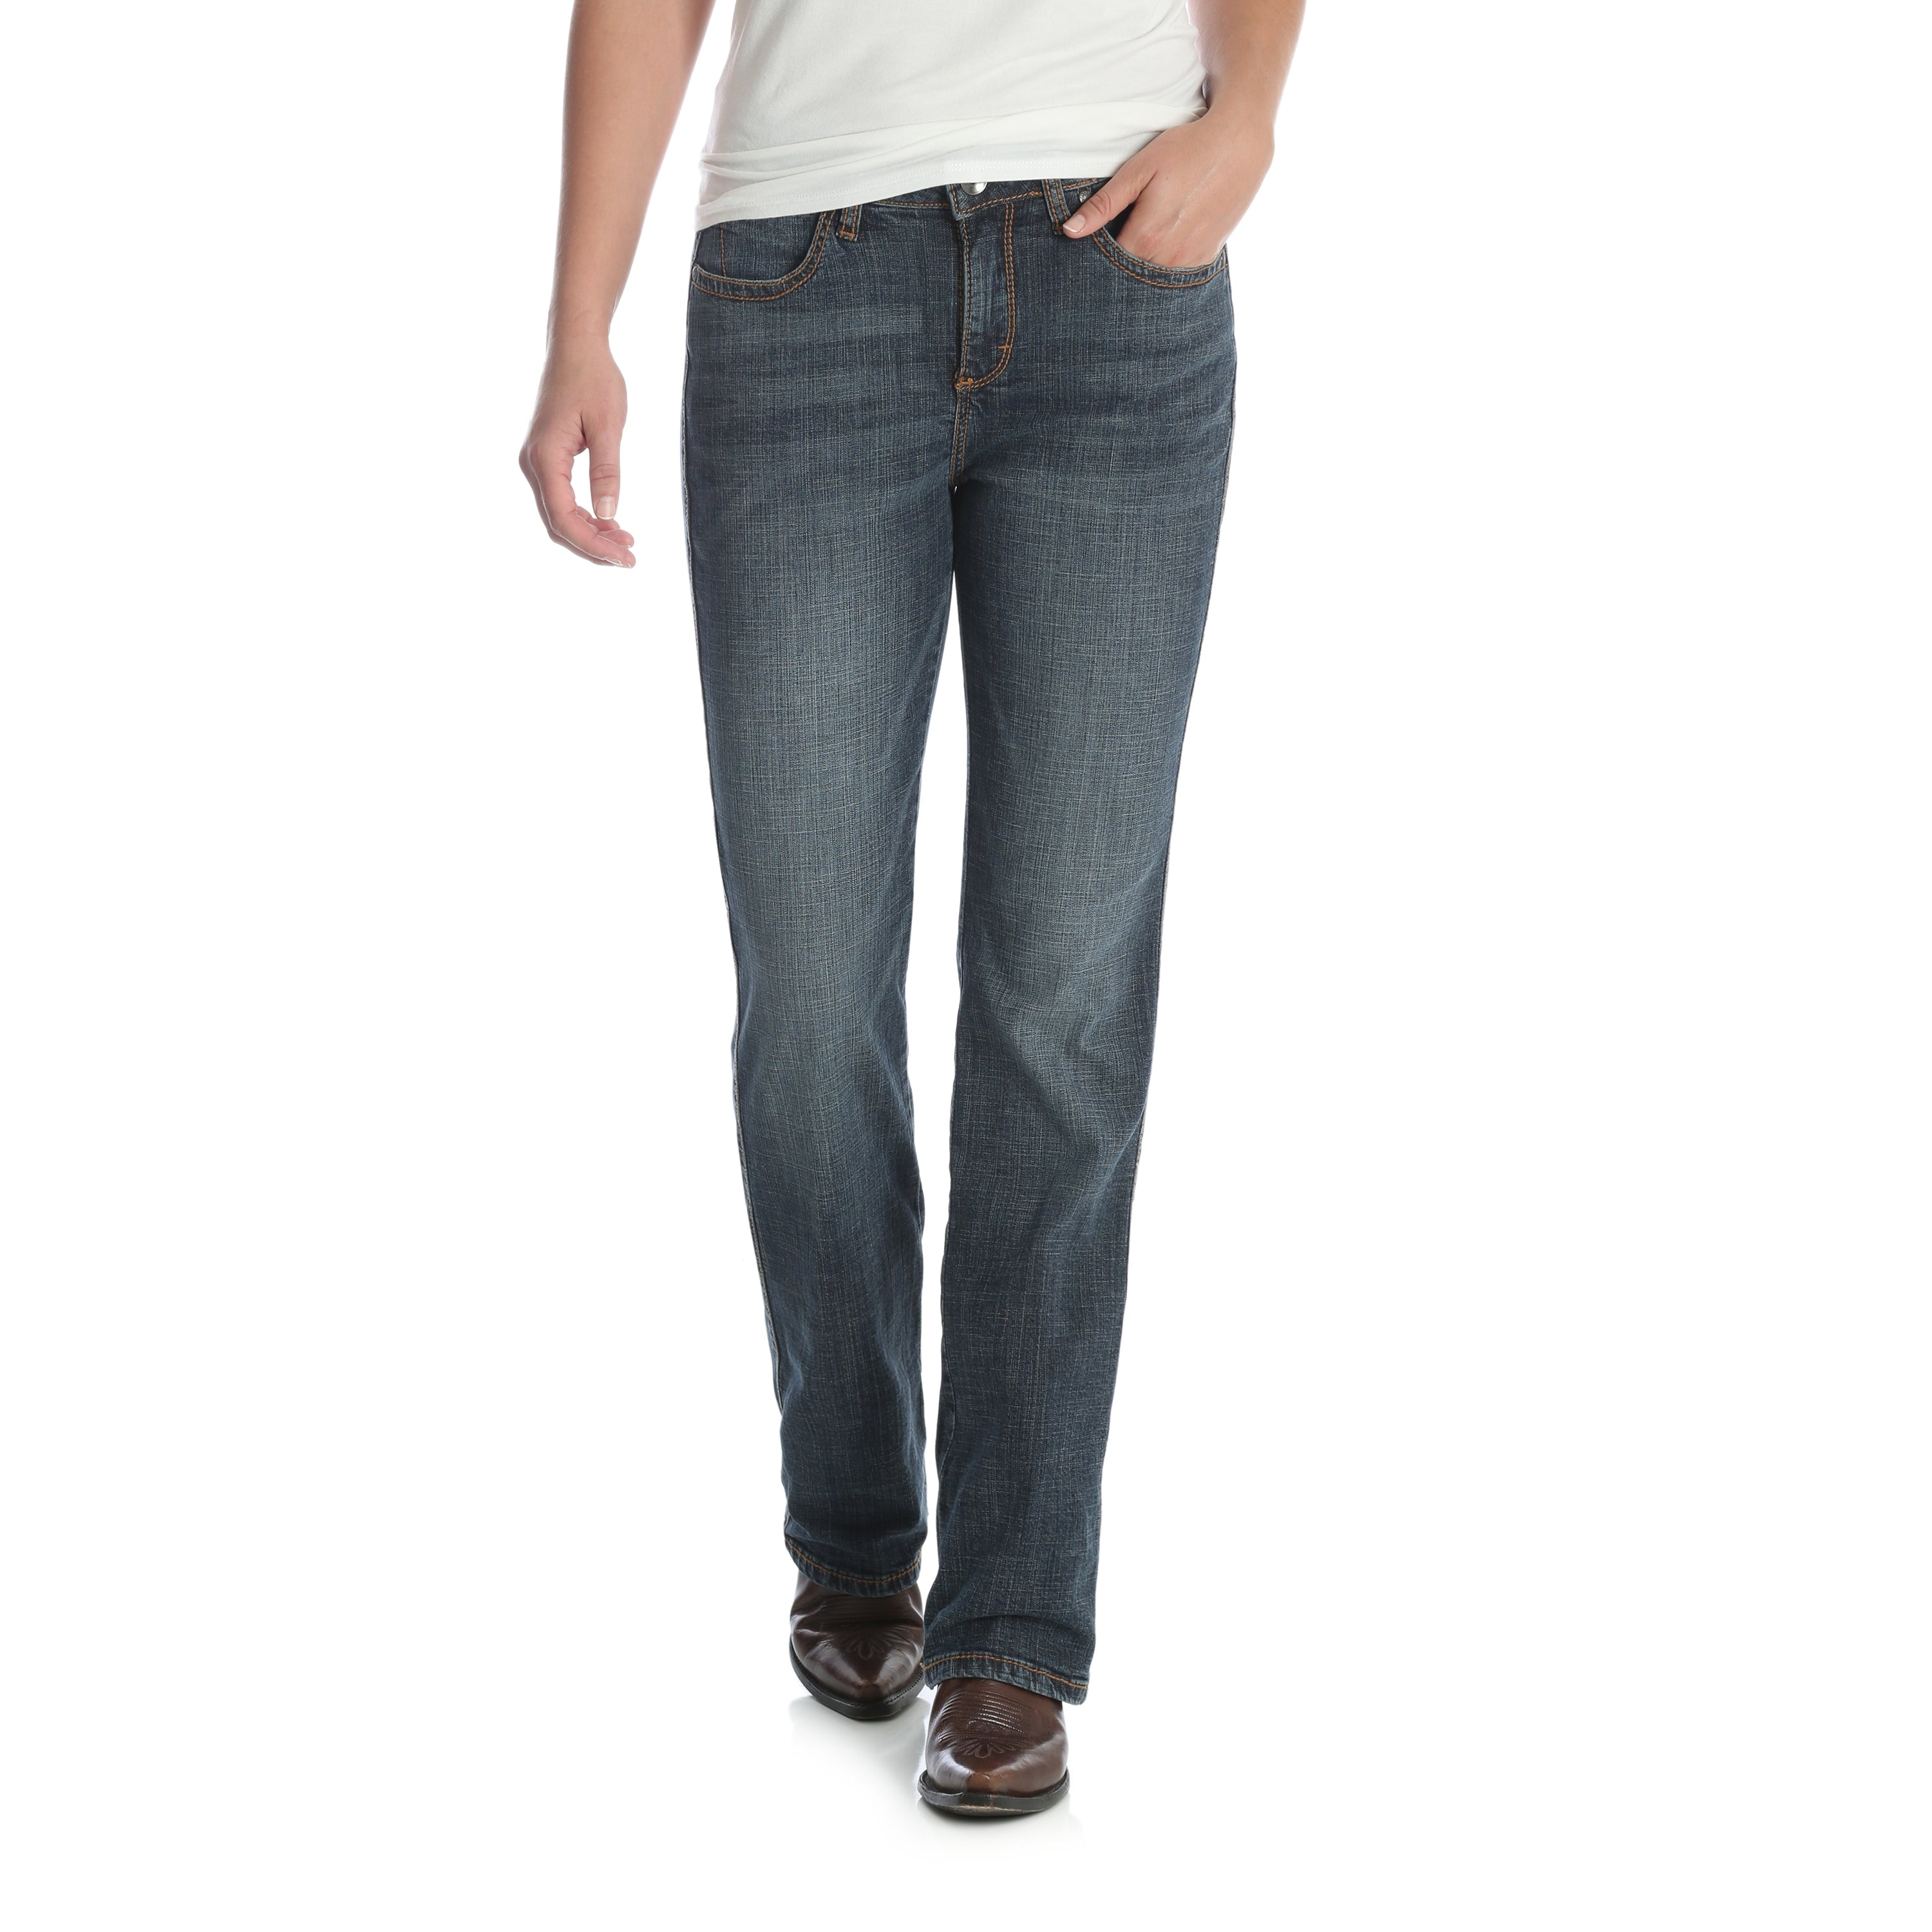 6d87be95a401 Wrangler Women s Aura Instantly Slimming Bootcut Jeans